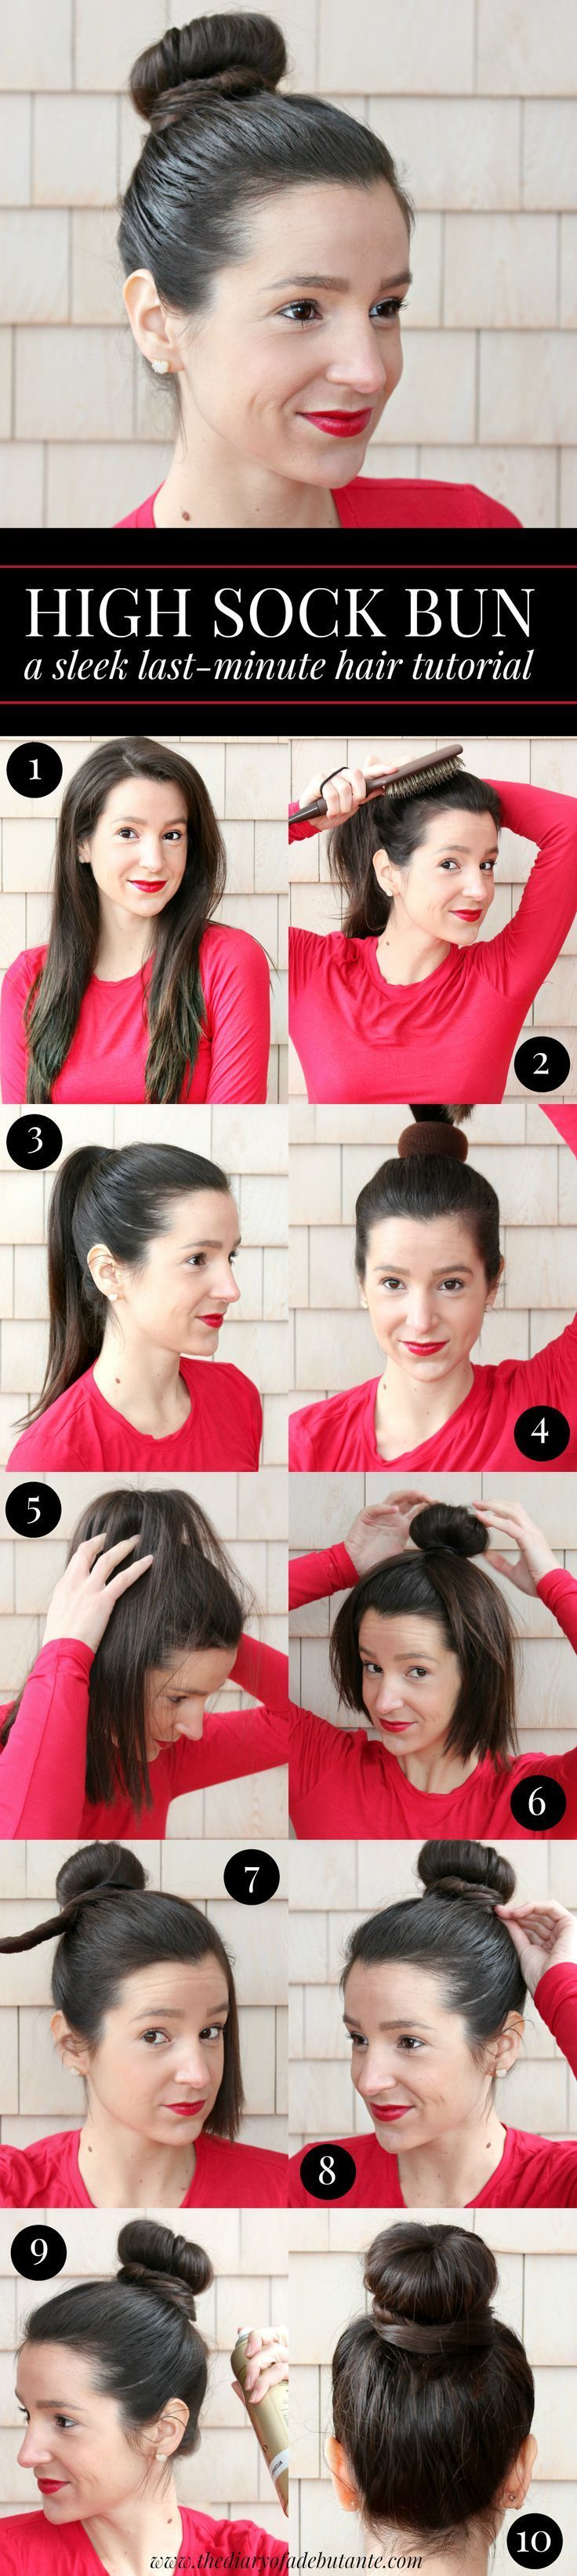 Sleek high sock bun hair tutorial. This quick and easy updo hairstyle works best with 2nd day hair and takes no more than 3 minutes with the right glosser paddle brush. #BunHairstylesBallet